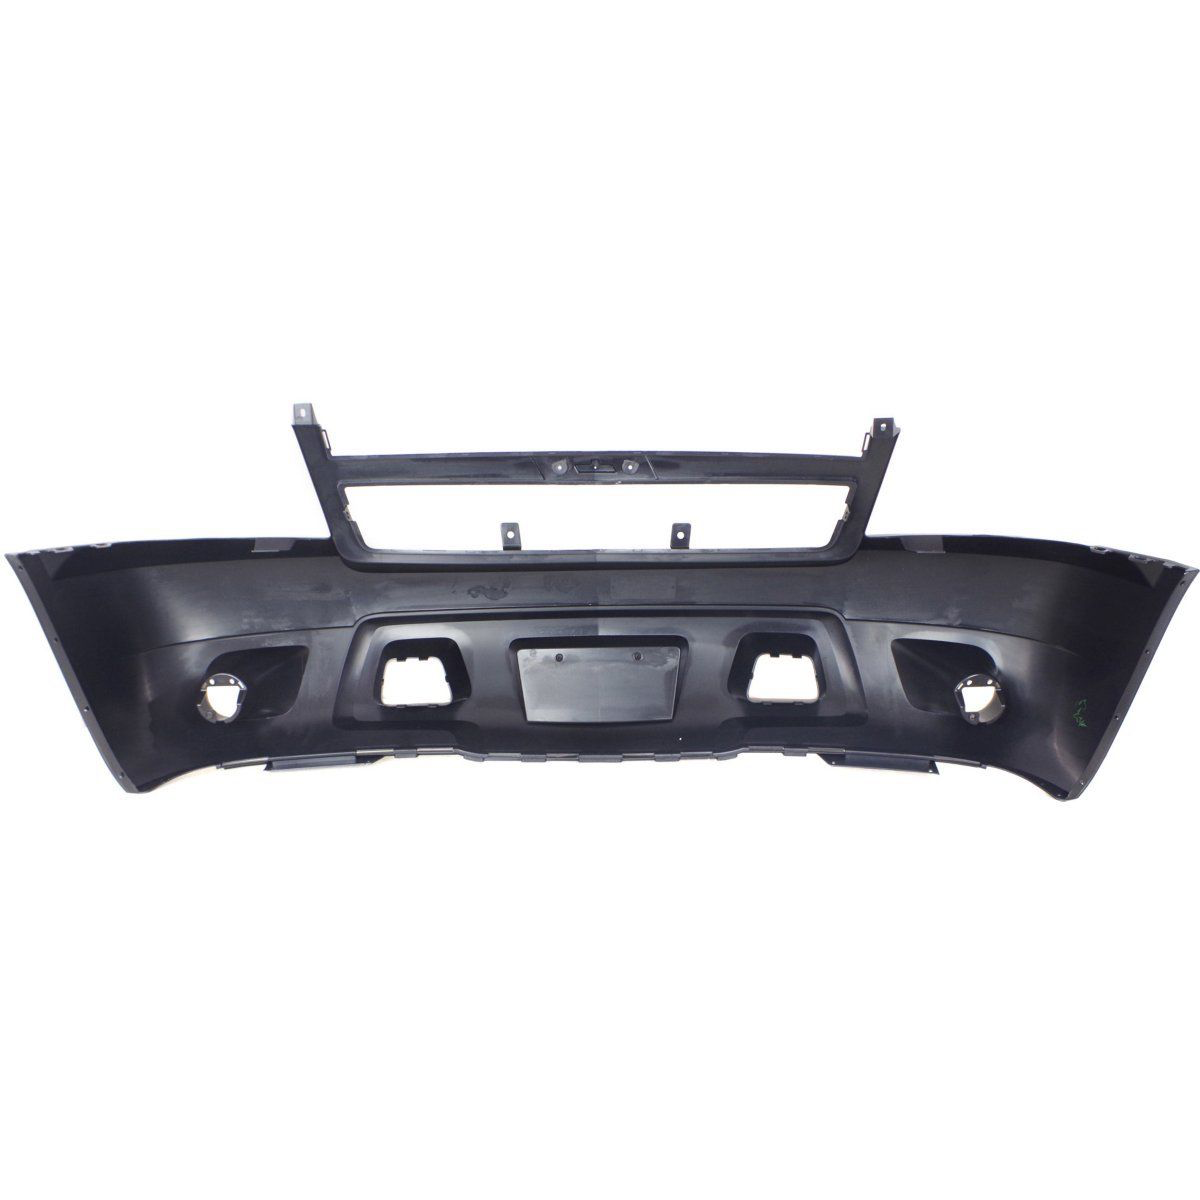 2007-2014 CHEVY TAHOE SUBURBAN AVALANCHE Front Bumper Cover w/o Off Road Pkg Painted to Match